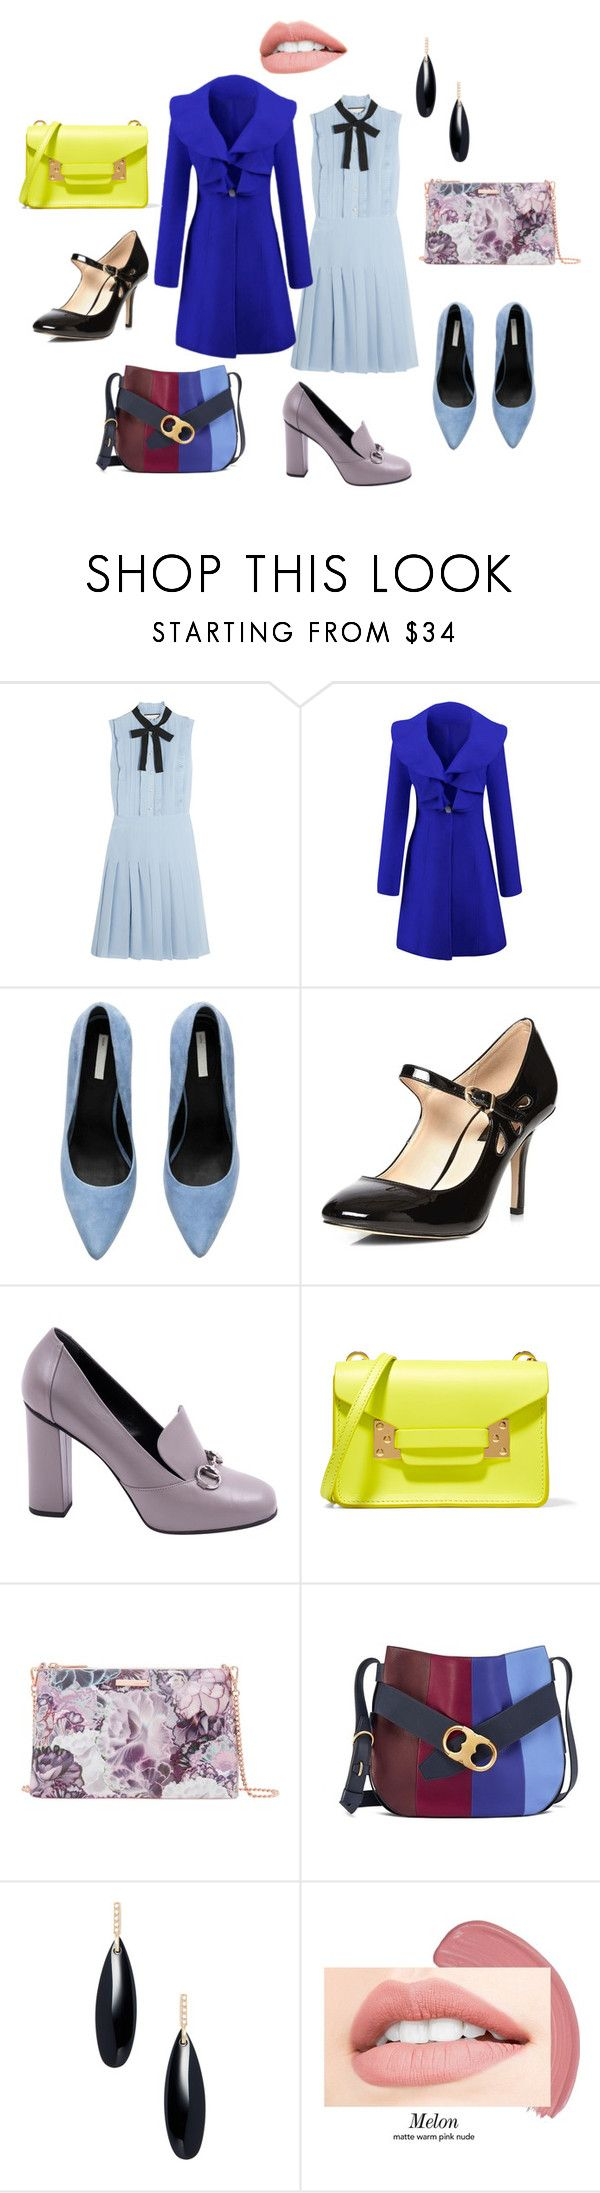 """Синее пальто"" by evavendoc on Polyvore featuring мода, Gucci, WithChic, Dorothy Perkins, Sophie Hulme, Ted Baker, Tory Burch и Janis Savitt"